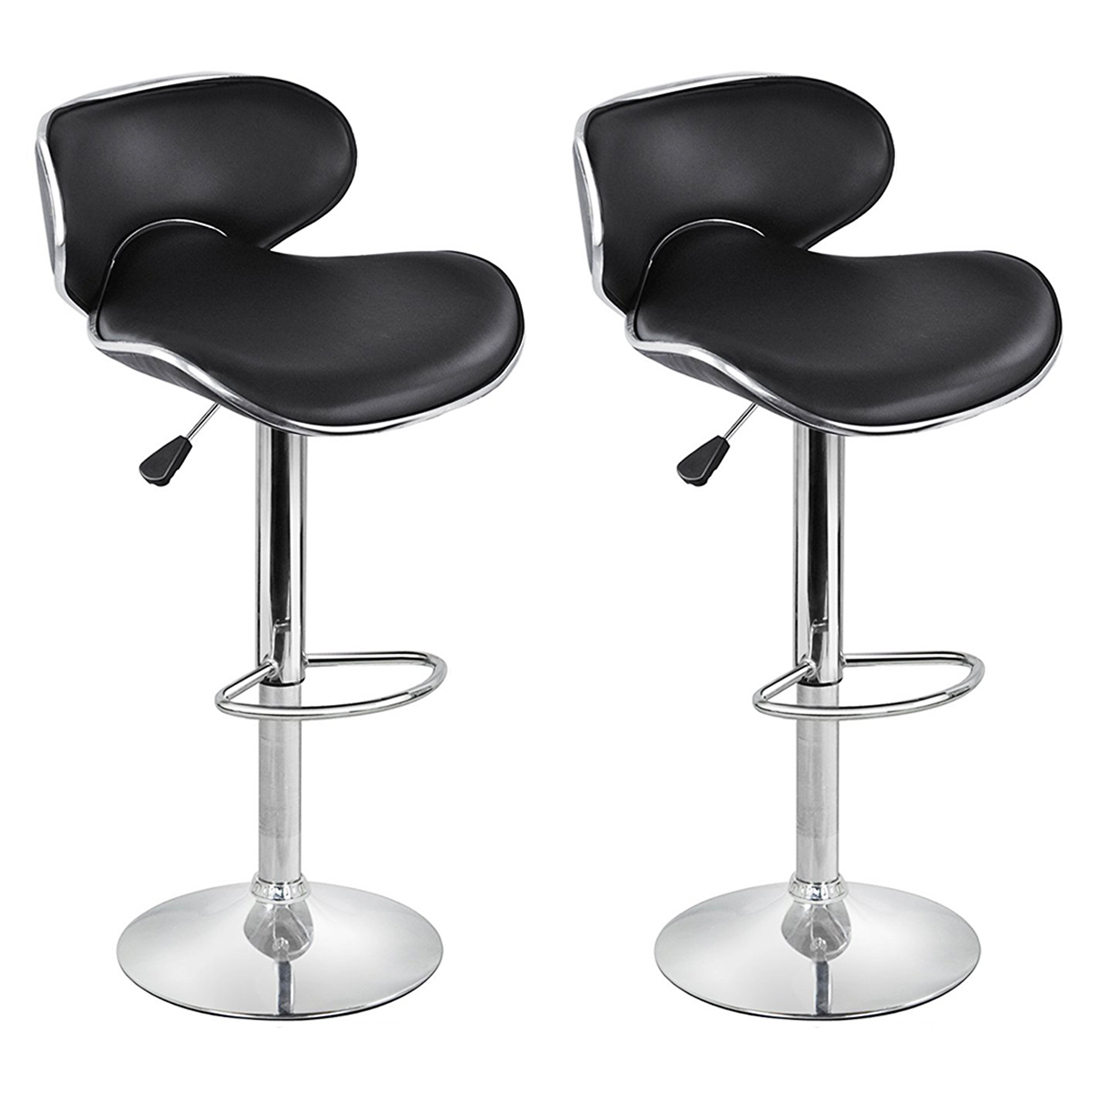 2 Faux Leather Kitchen Breakfast Bar Stool Barstools